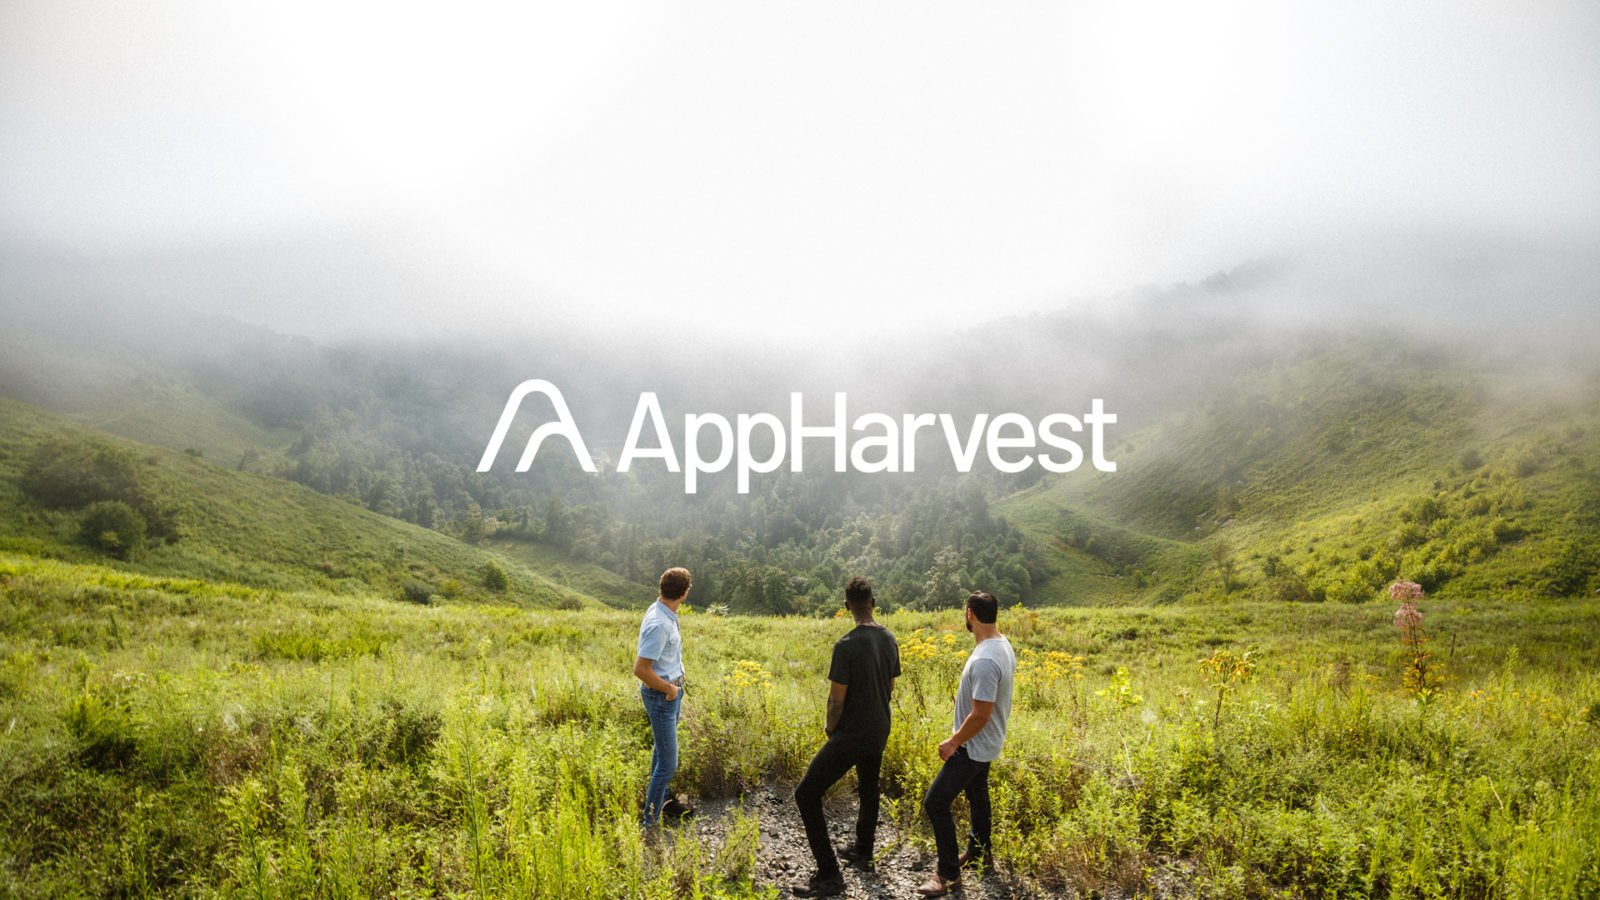 Brand identity for AppHarvest, a high tech Appalachian greenhouse startup